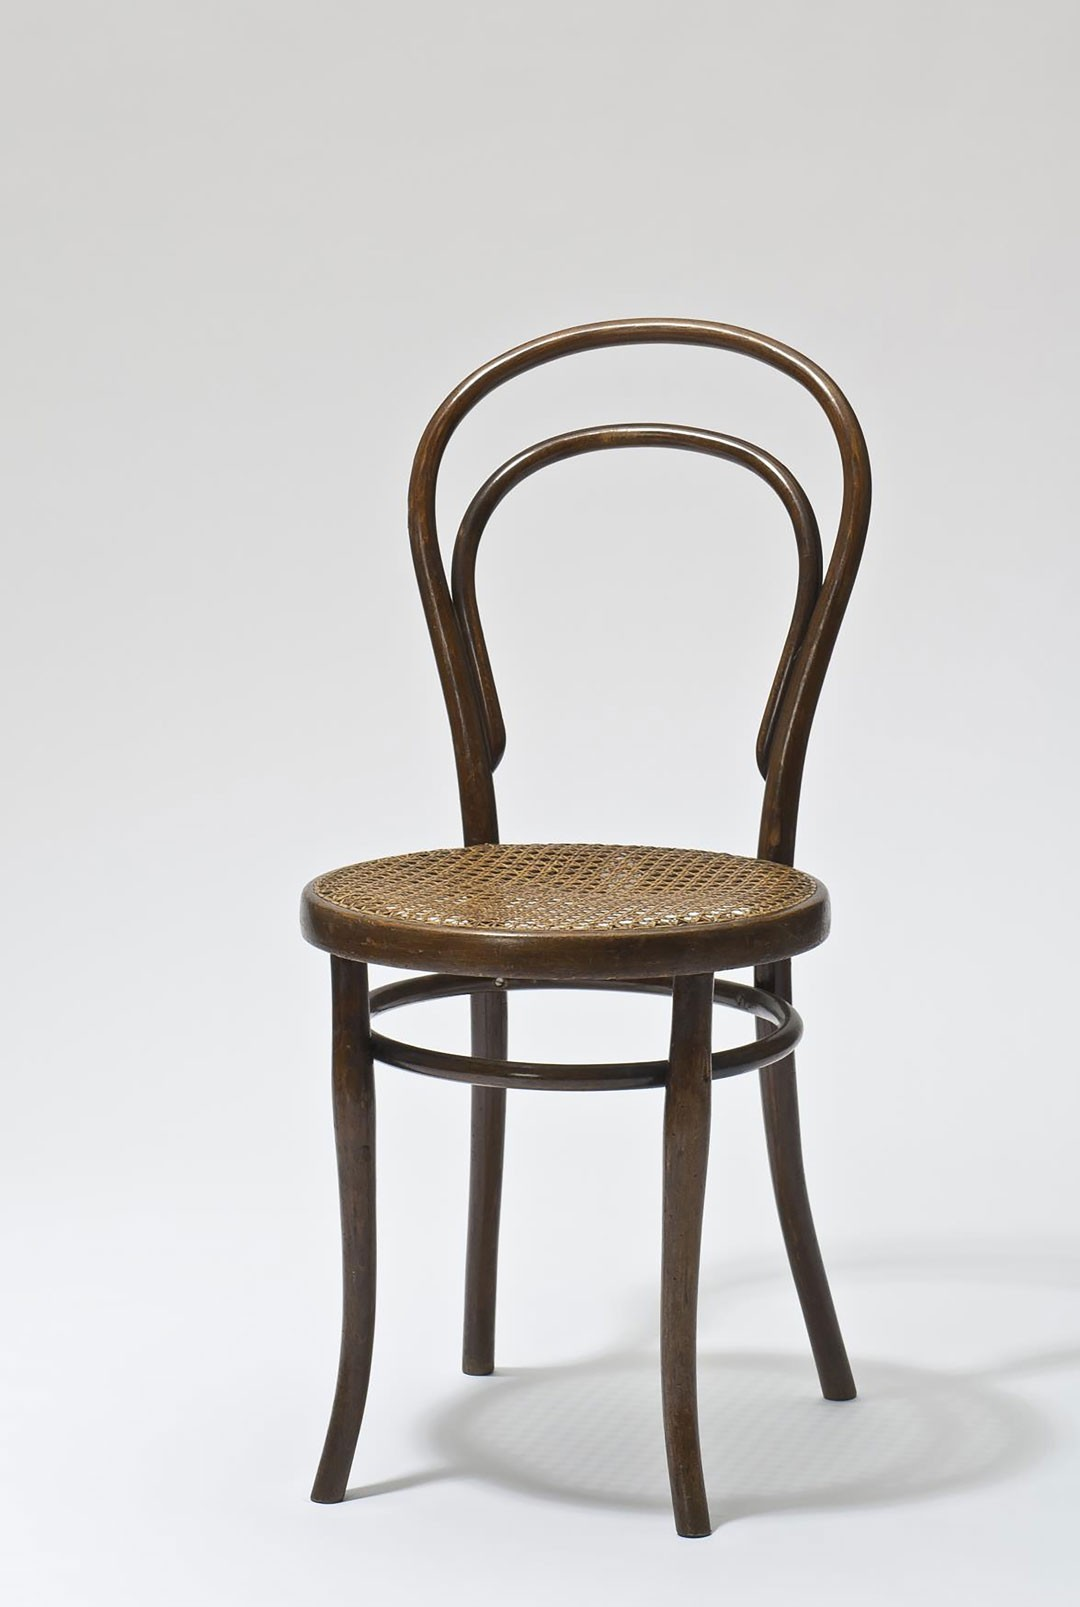 <BODY><div>Gebrüder Thonet, Chair, Model N0. 14, Vienna, 1859 (Execution: 1890–1918)</div><div>© MAK/Georg Mayer</div><div> </div></BODY>